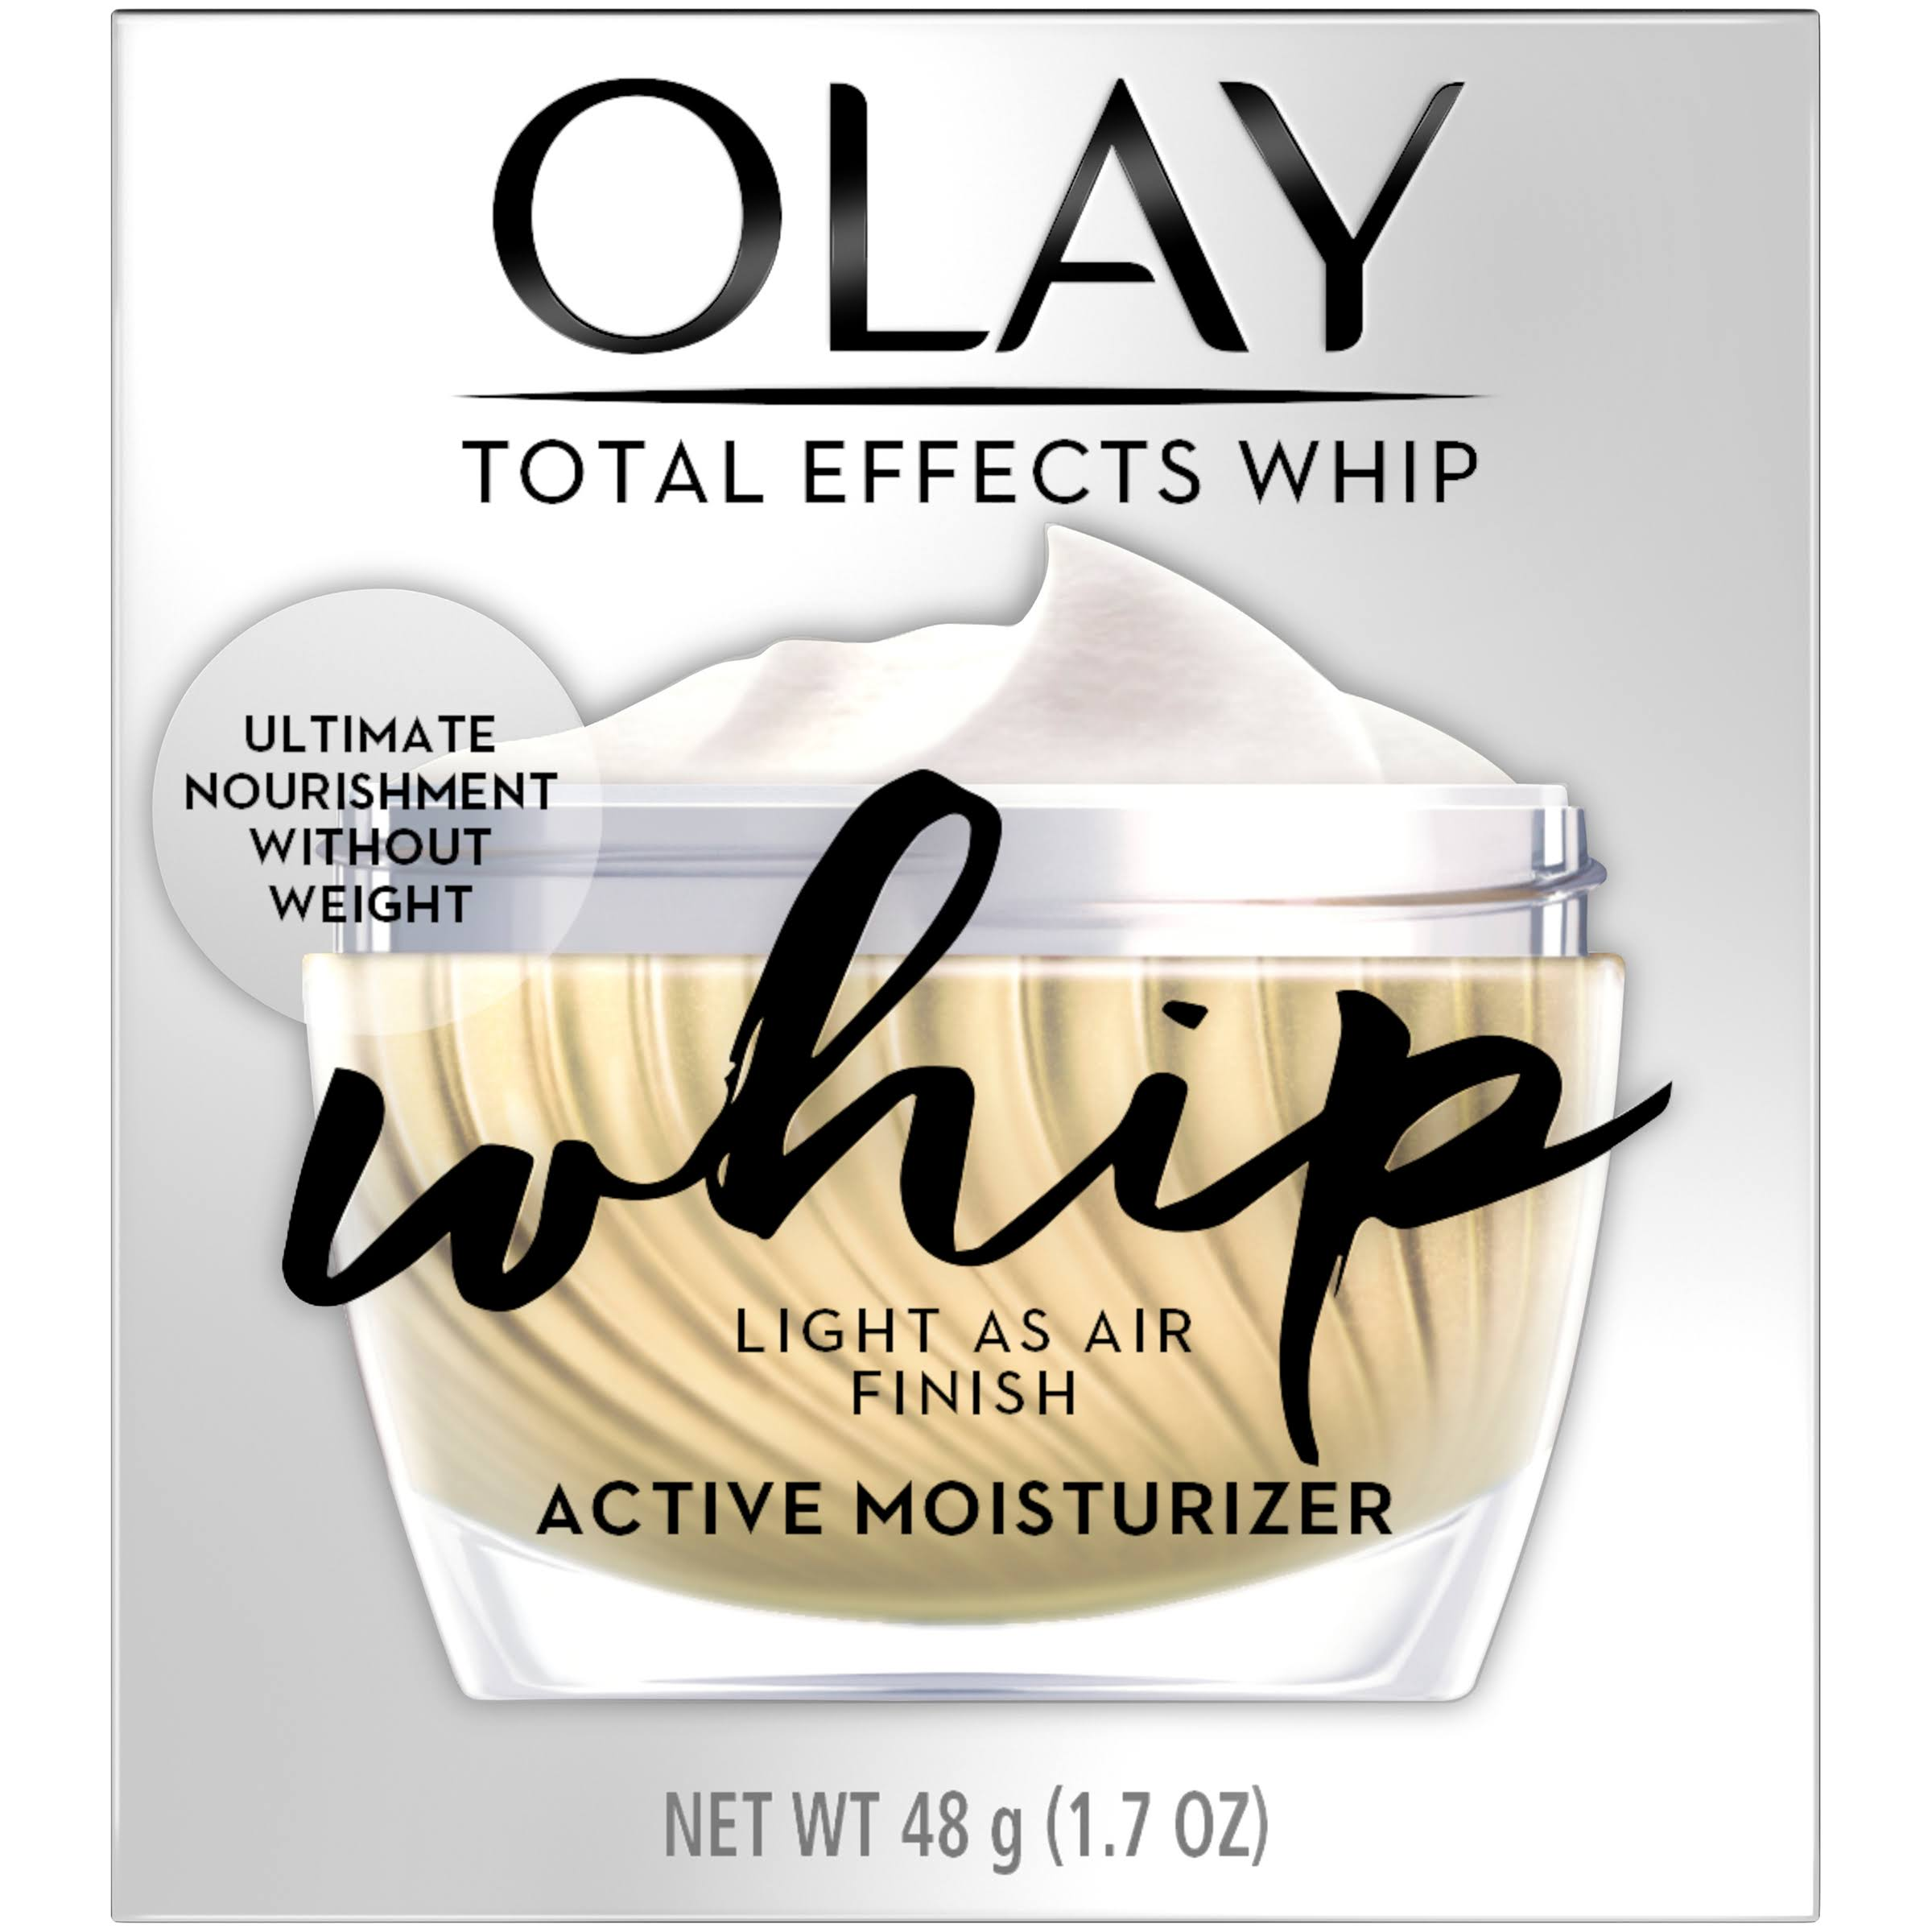 Olay Total Effects Whip Facial Moisturizer - 1.7oz